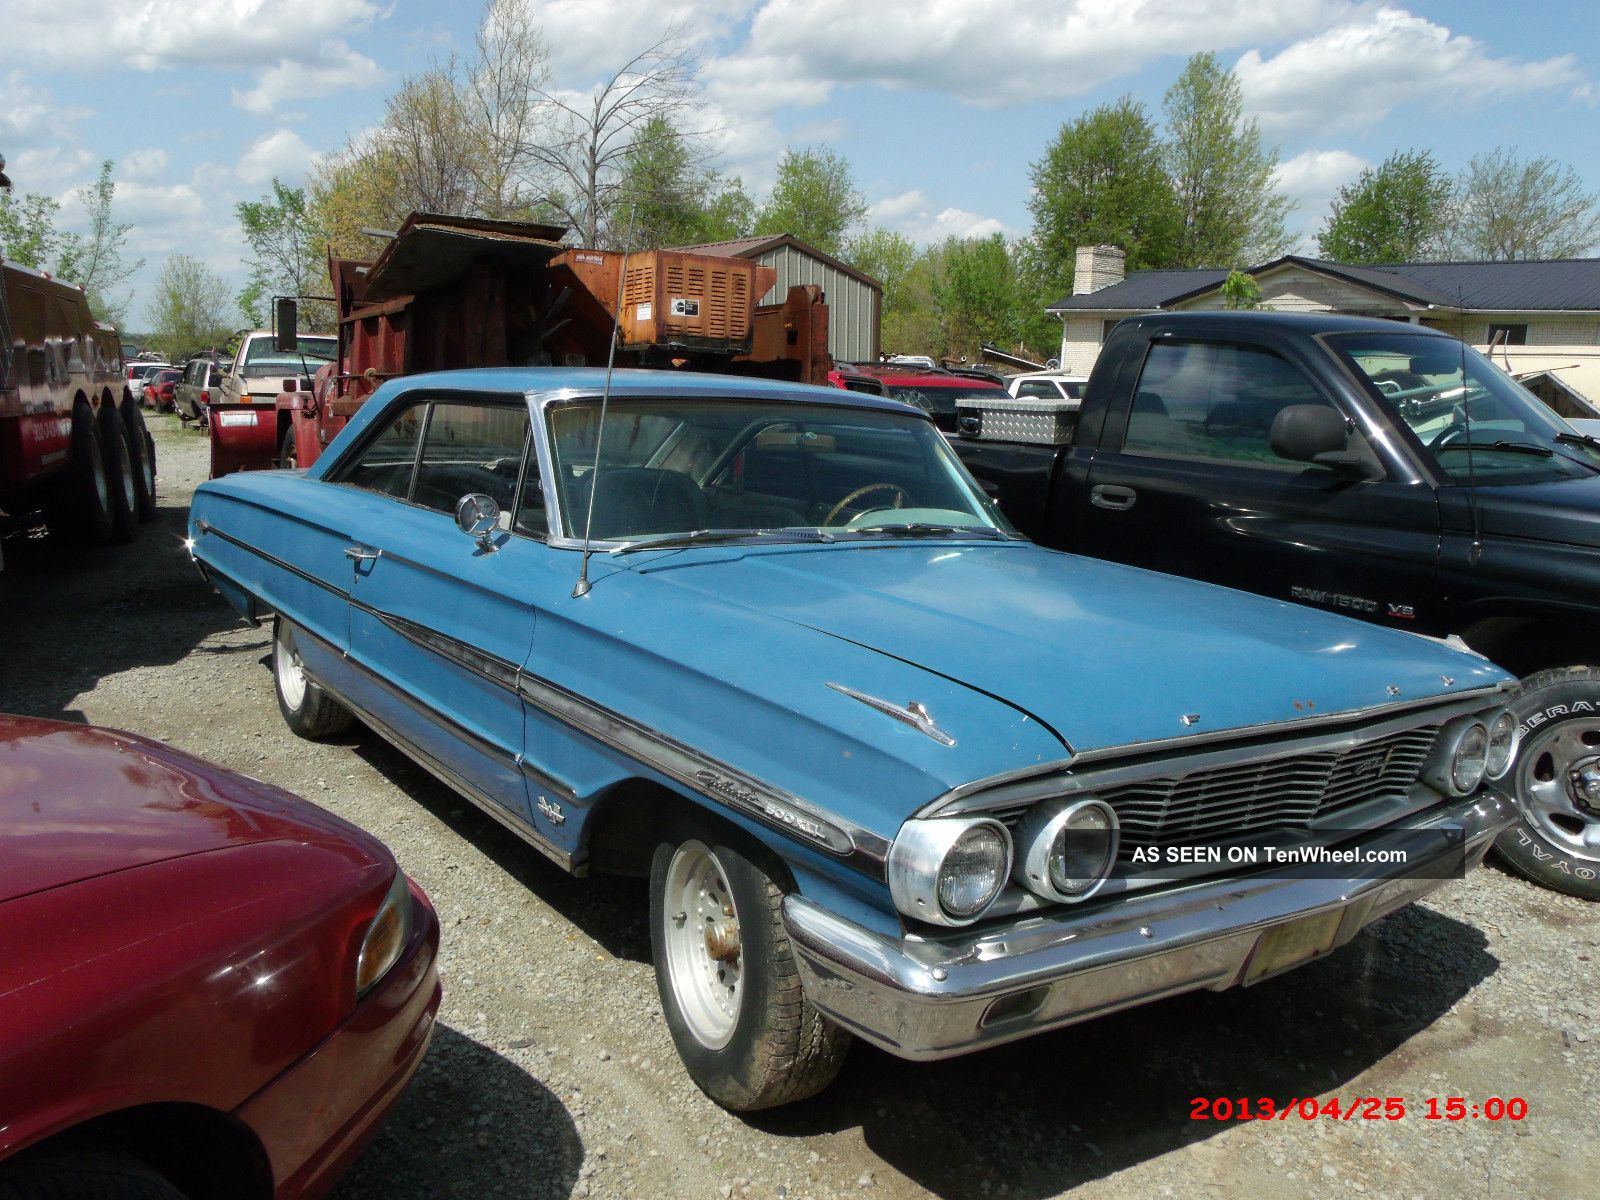 1964 ford galaxie 500xl 390 engine restorable automatic transmission console. Black Bedroom Furniture Sets. Home Design Ideas